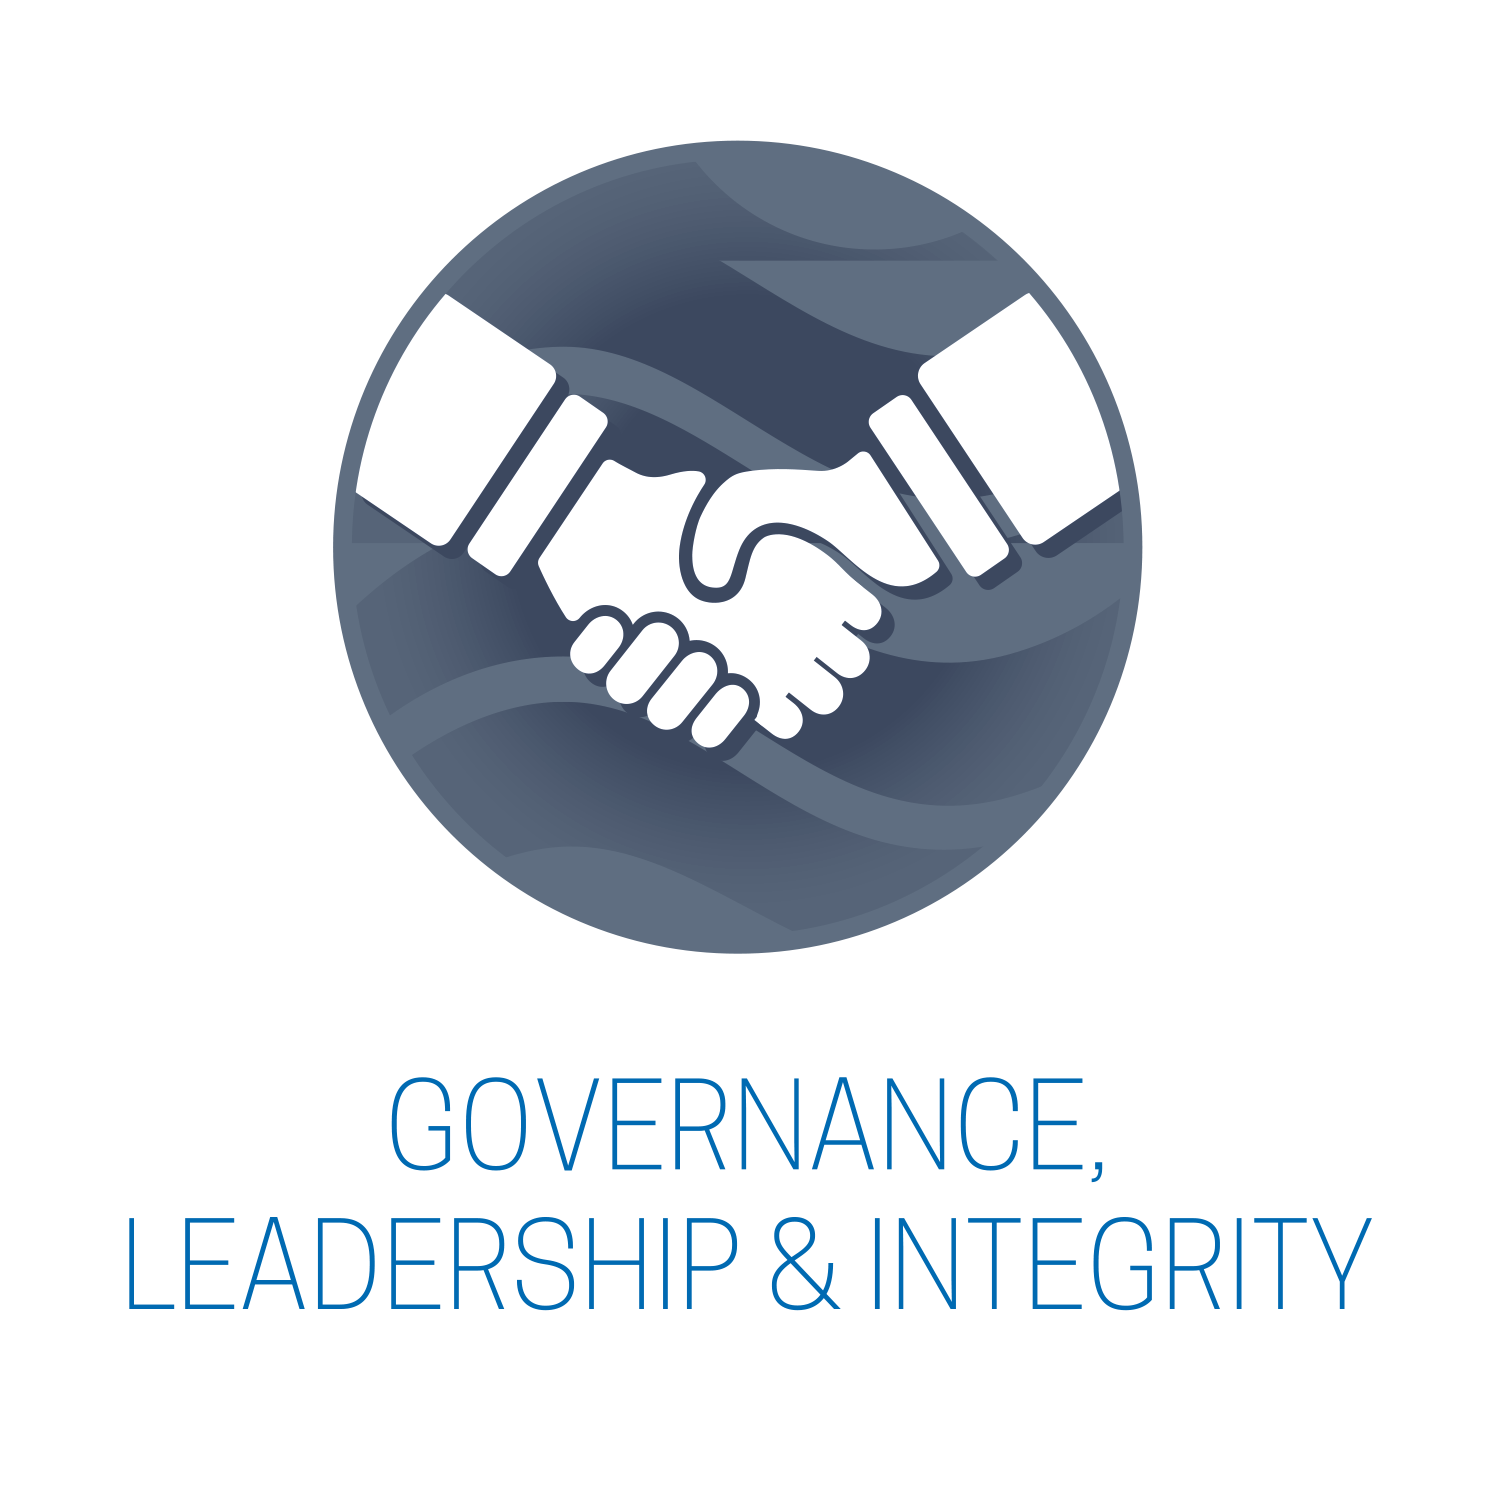 governance, leadership and integrity